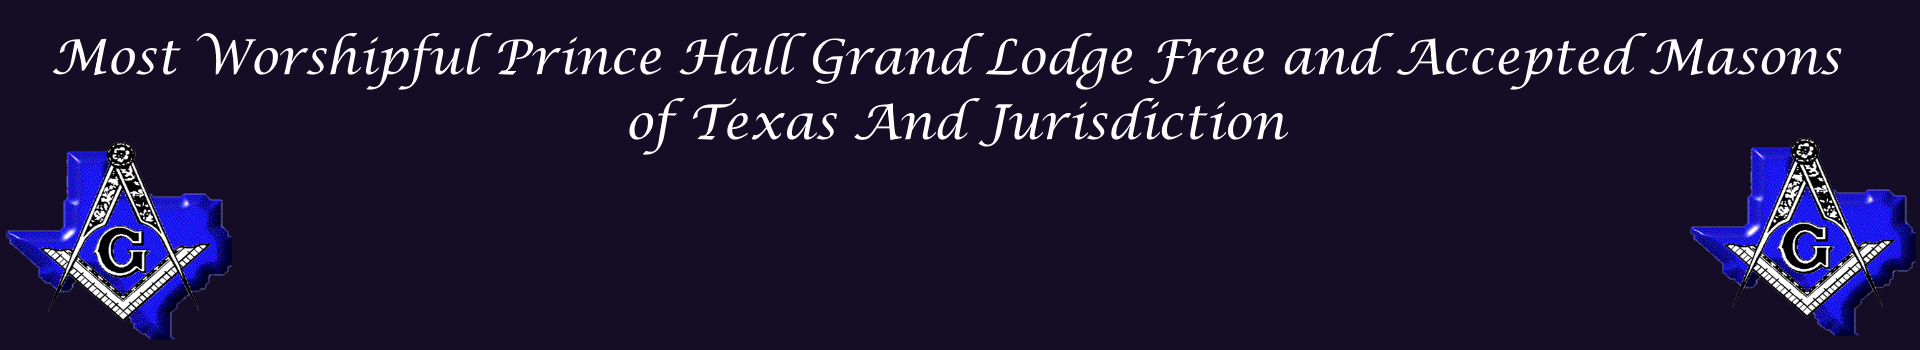 The Most Worshipful Prince Hall Grand Lodge